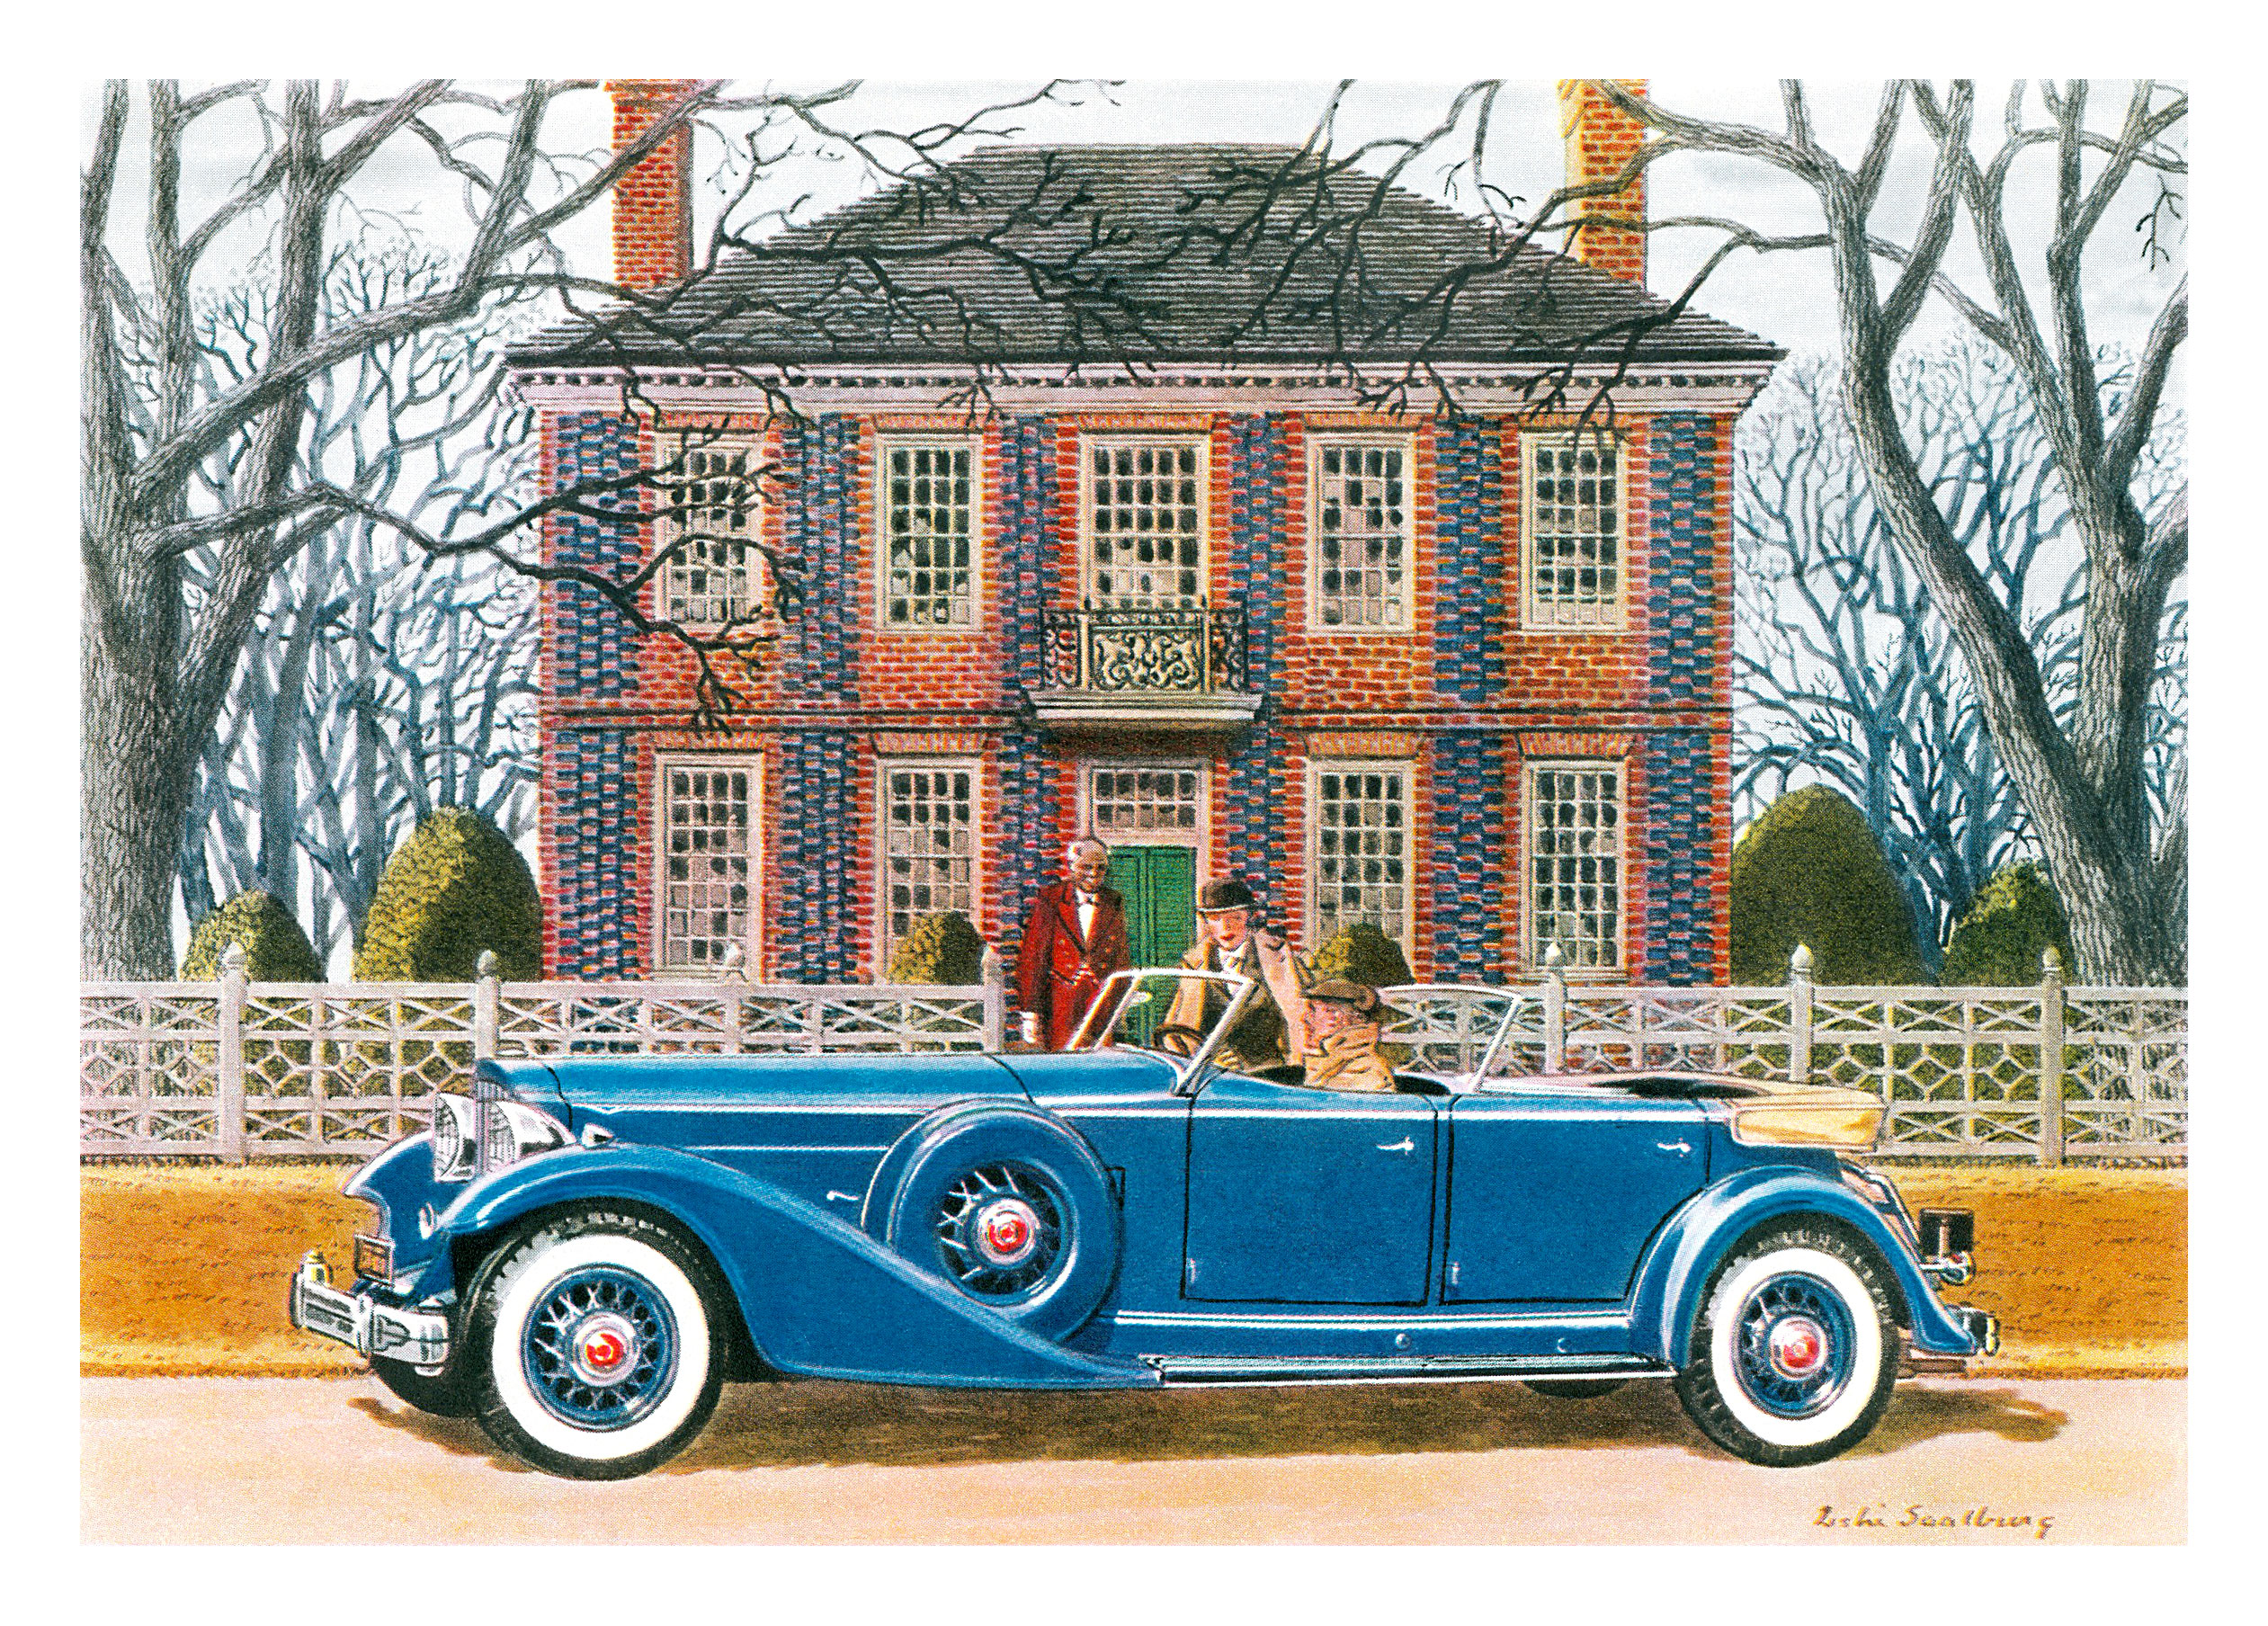 1933 Packard Dual Cowl Phaeton - Illustrated by Leslie Saalburg